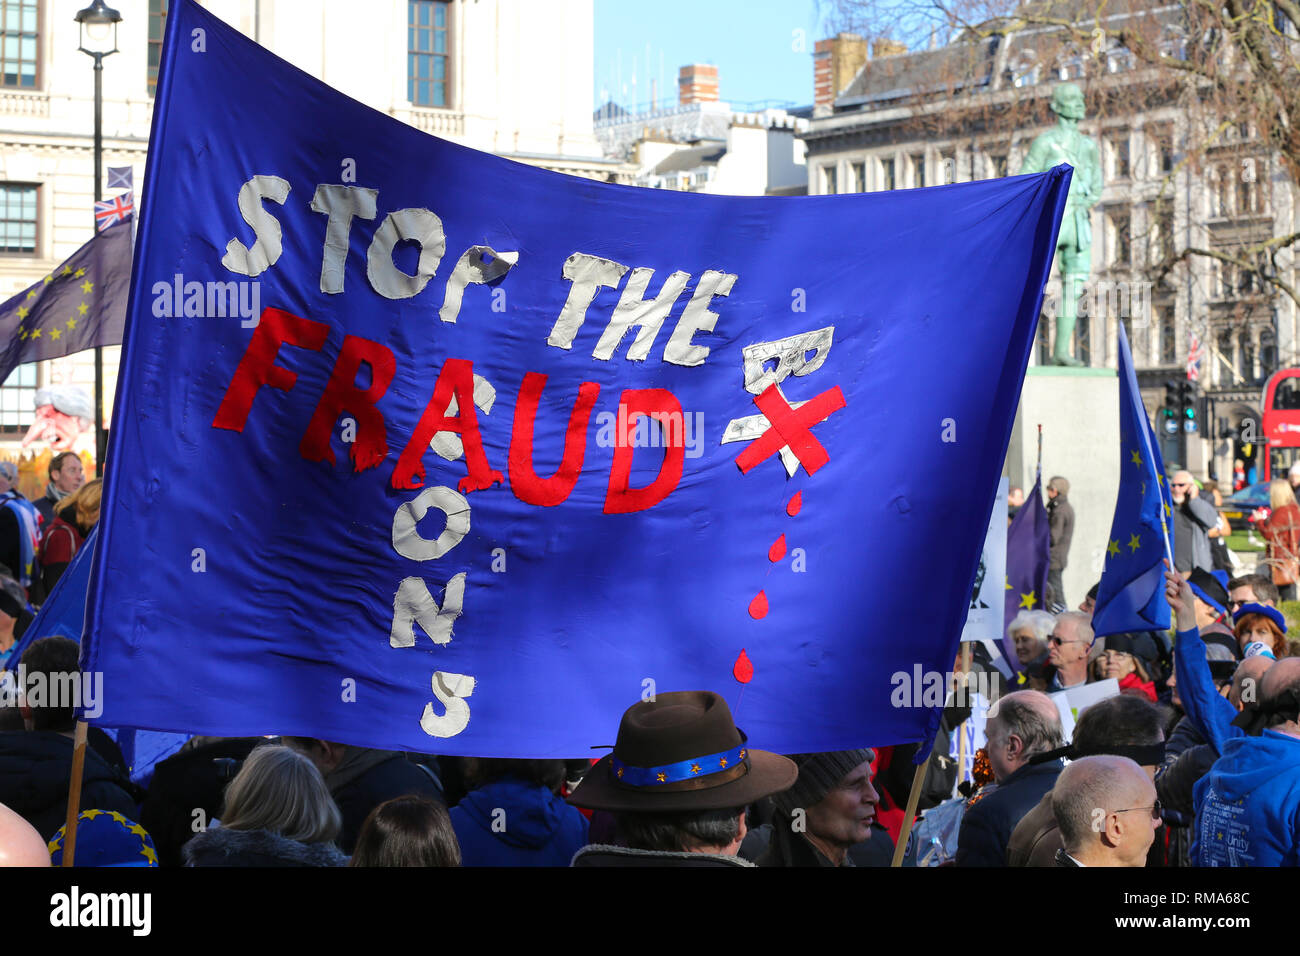 Its Not Just Demonstrators Saying >> London Uk 14th Feb 2019 A Banner Saying Stop The Fraud Seen